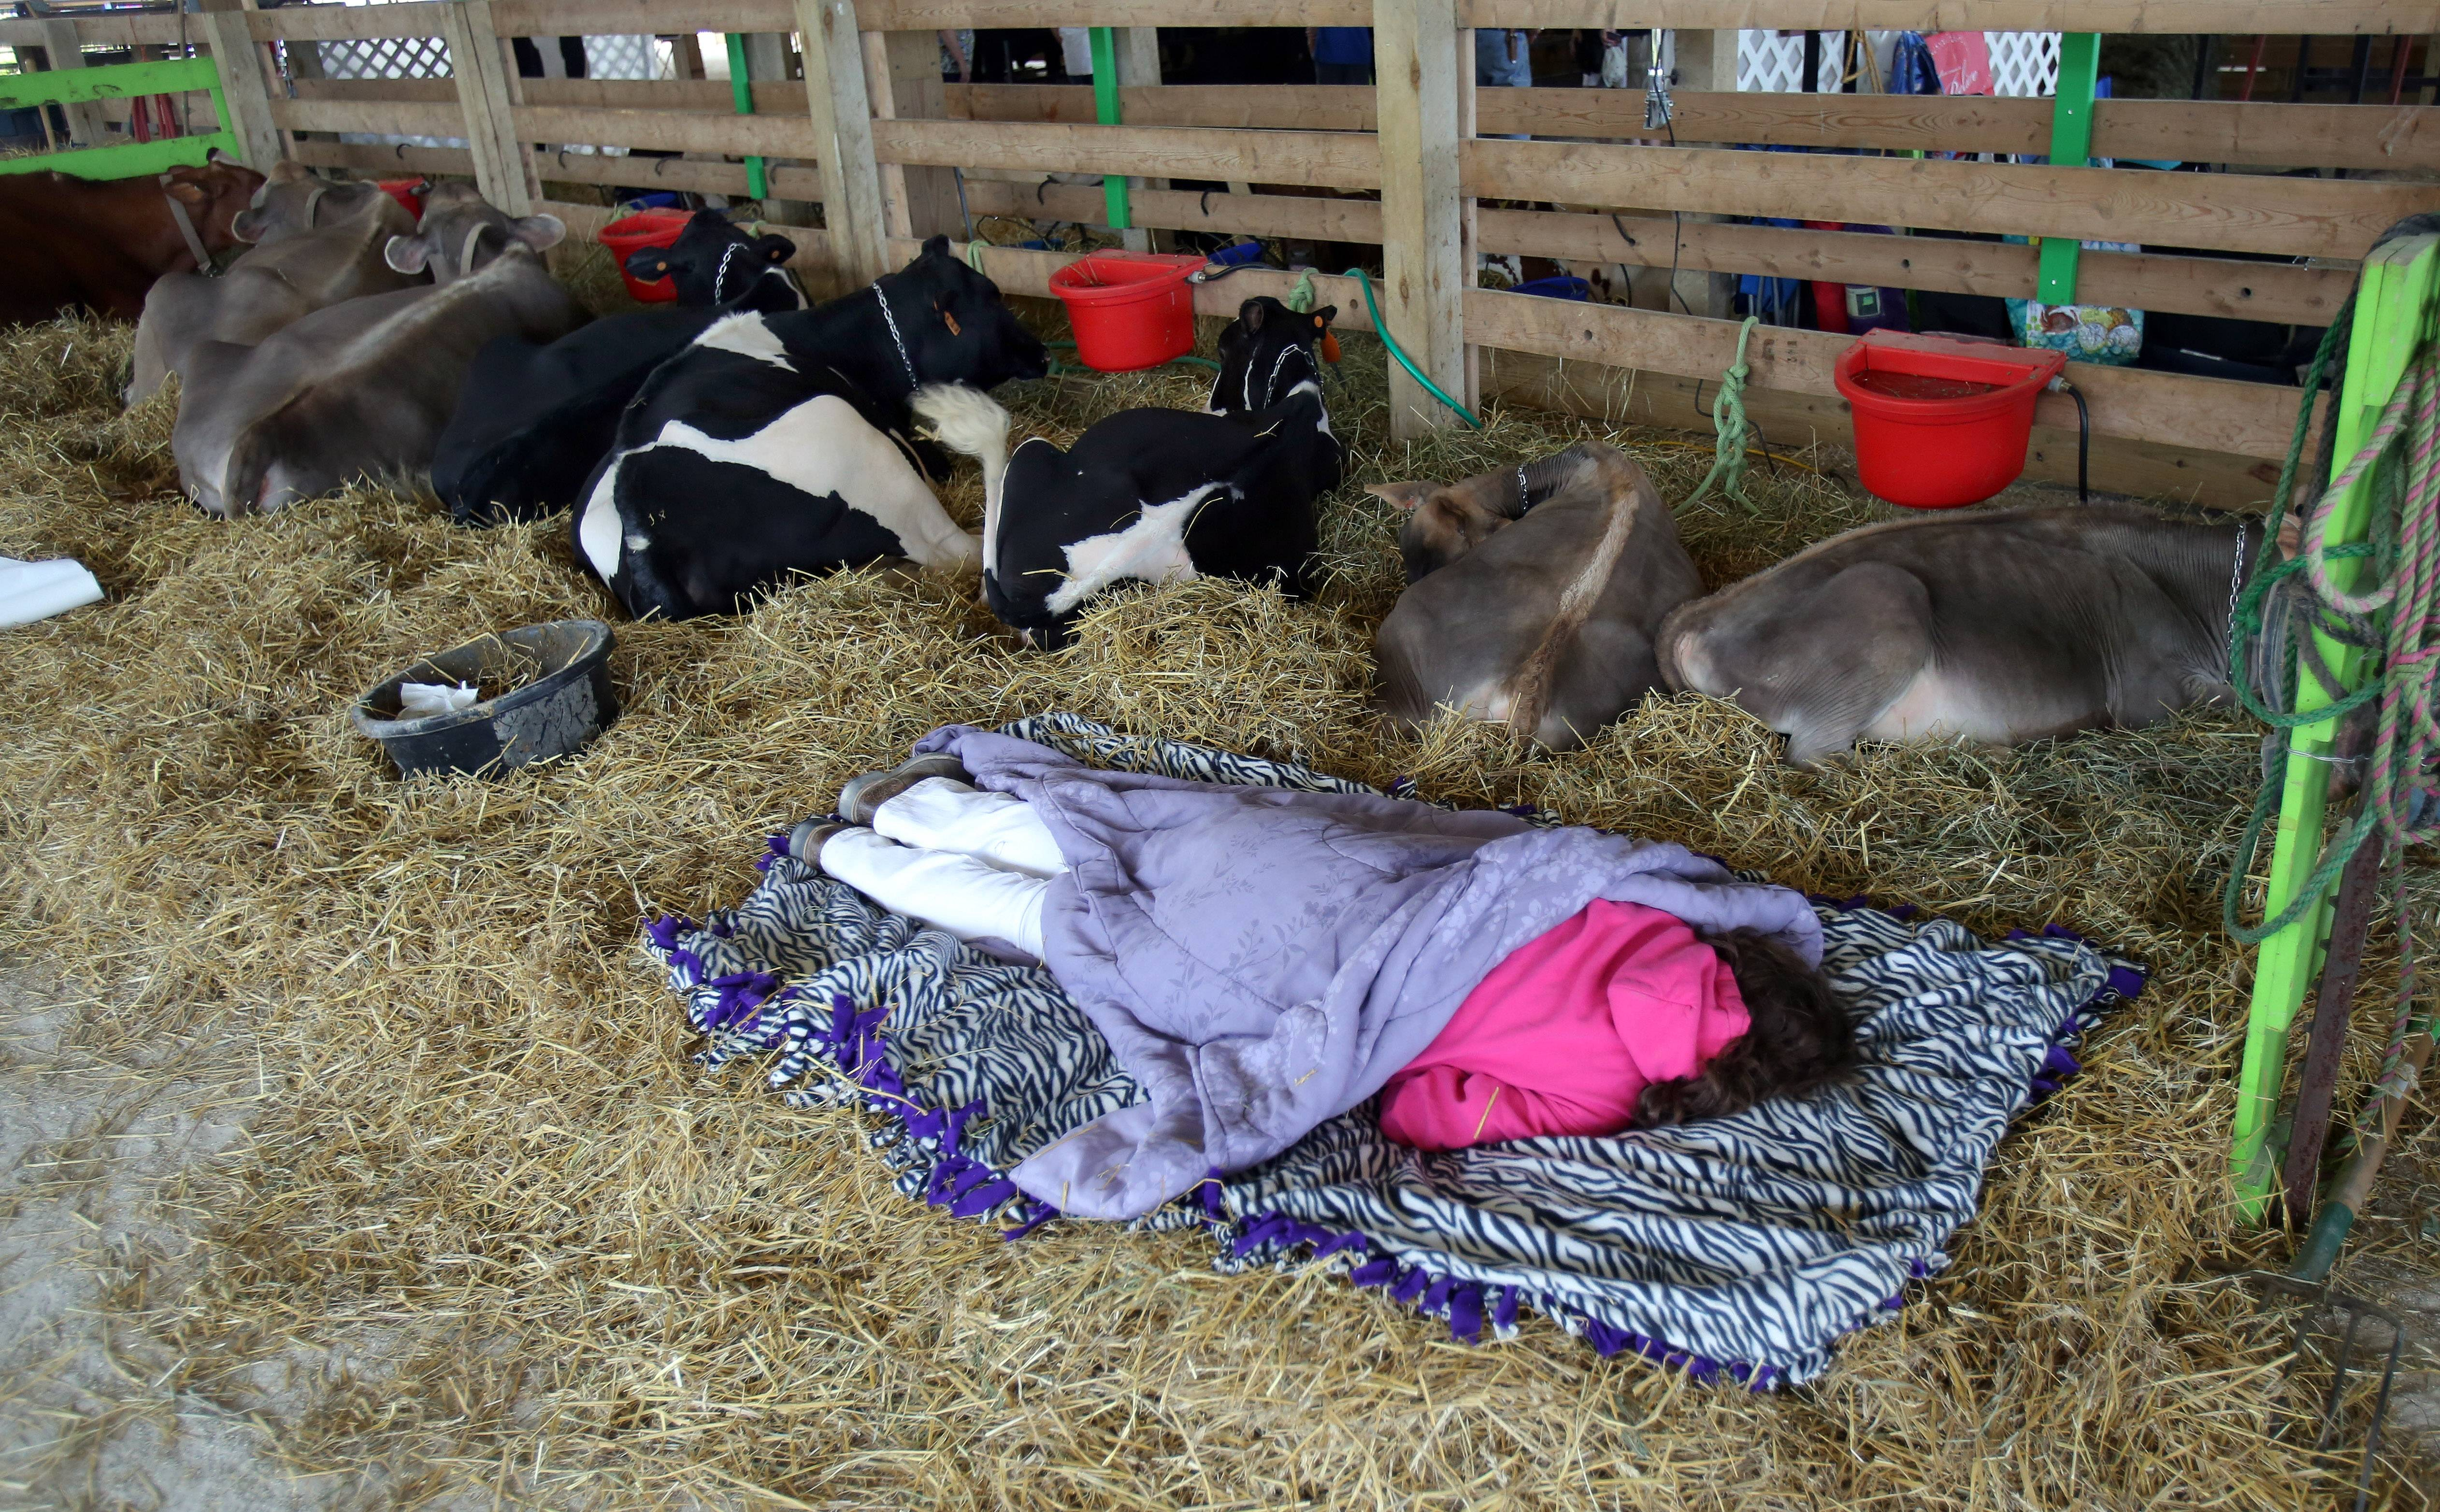 Marlena Streffenhagen of Rockford sleeps with her cows Friday at the Lake County Fair in Grayslake.